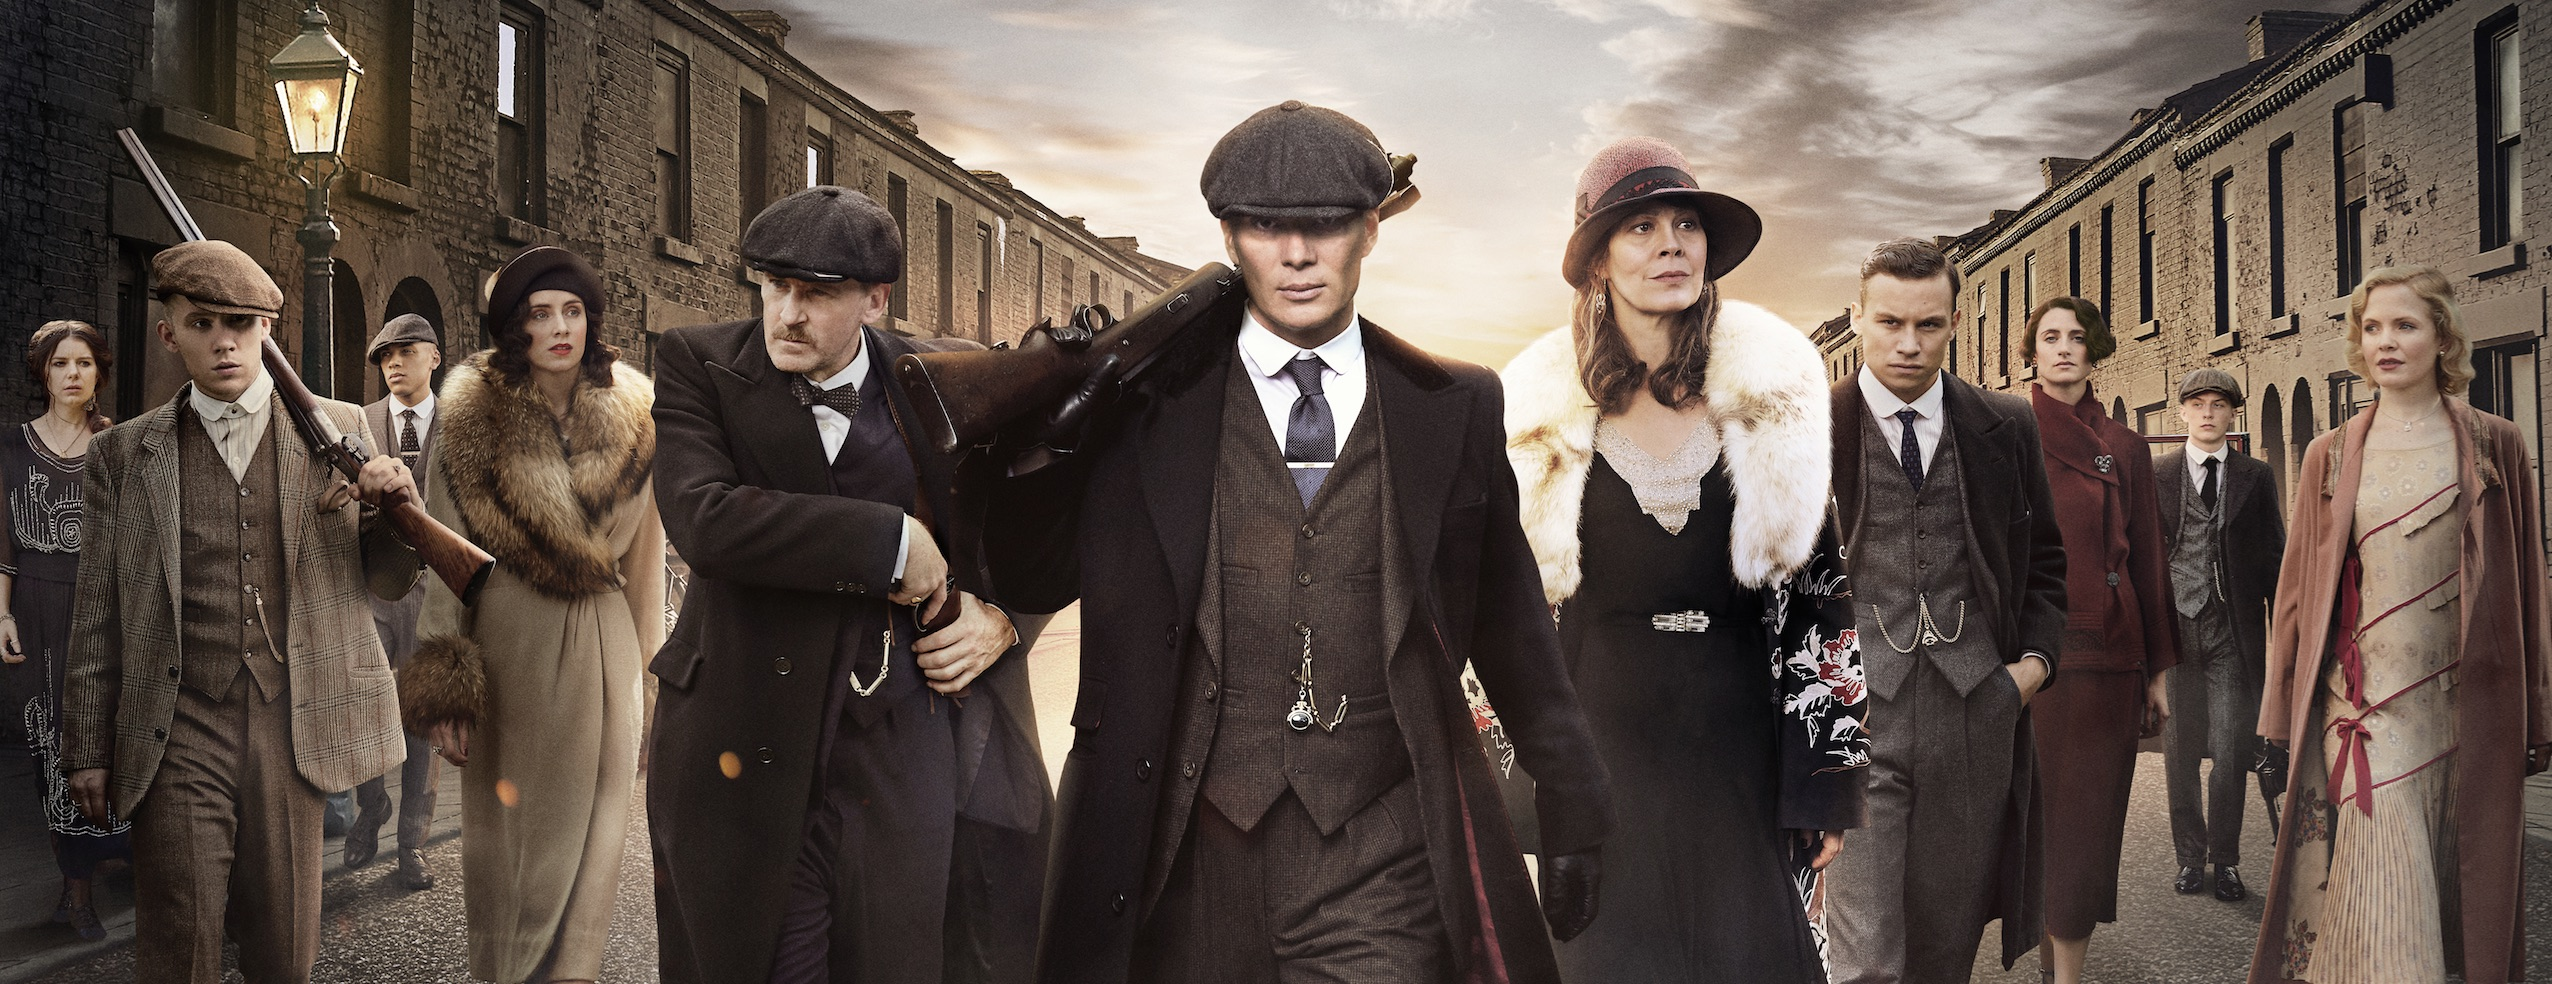 Peaky Blinders s4 cast CROPPED